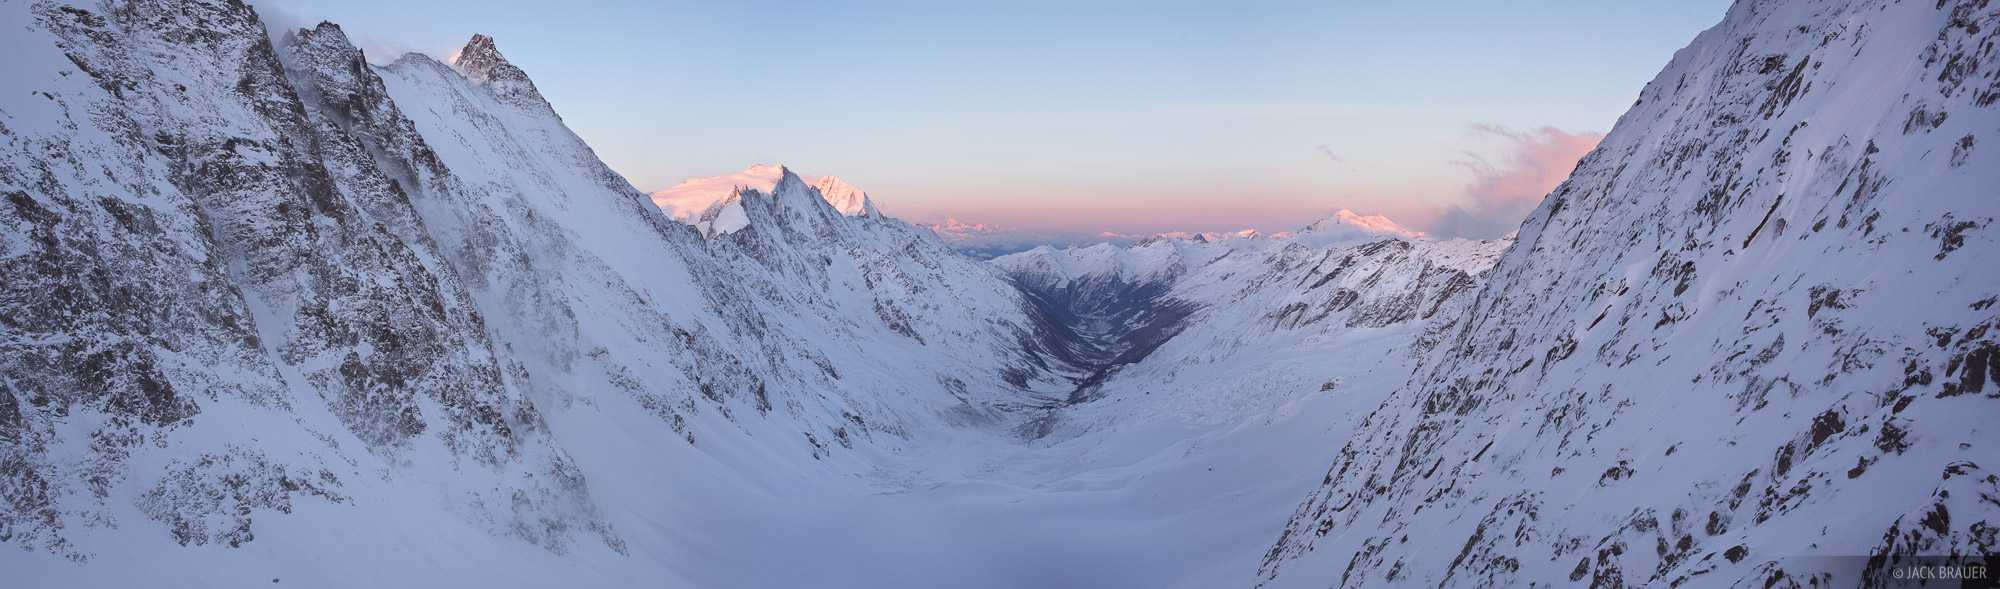 Hollandiahutte, sunrise, panorama, Bernese Oberland, Switzerland, Alps, photo